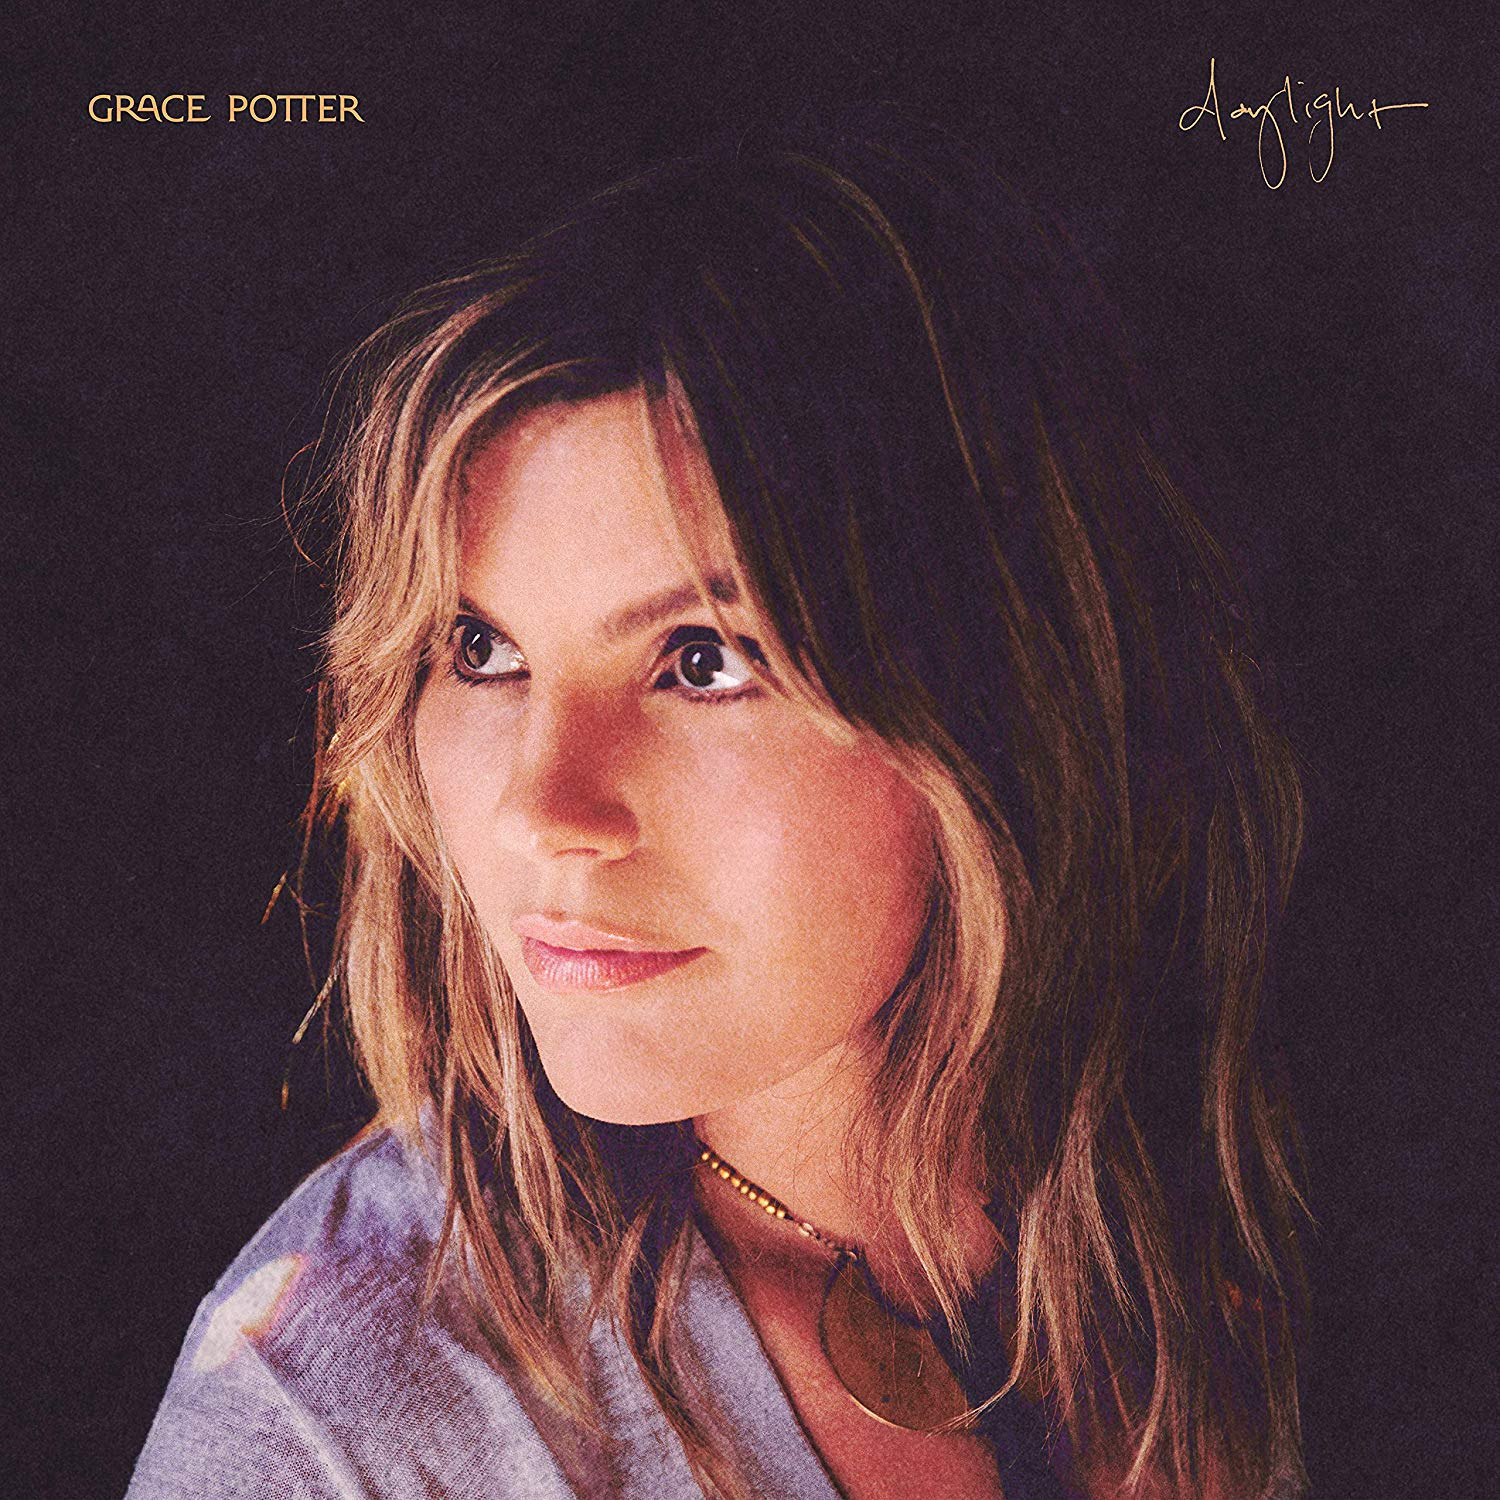 Image result for daylight grace potter